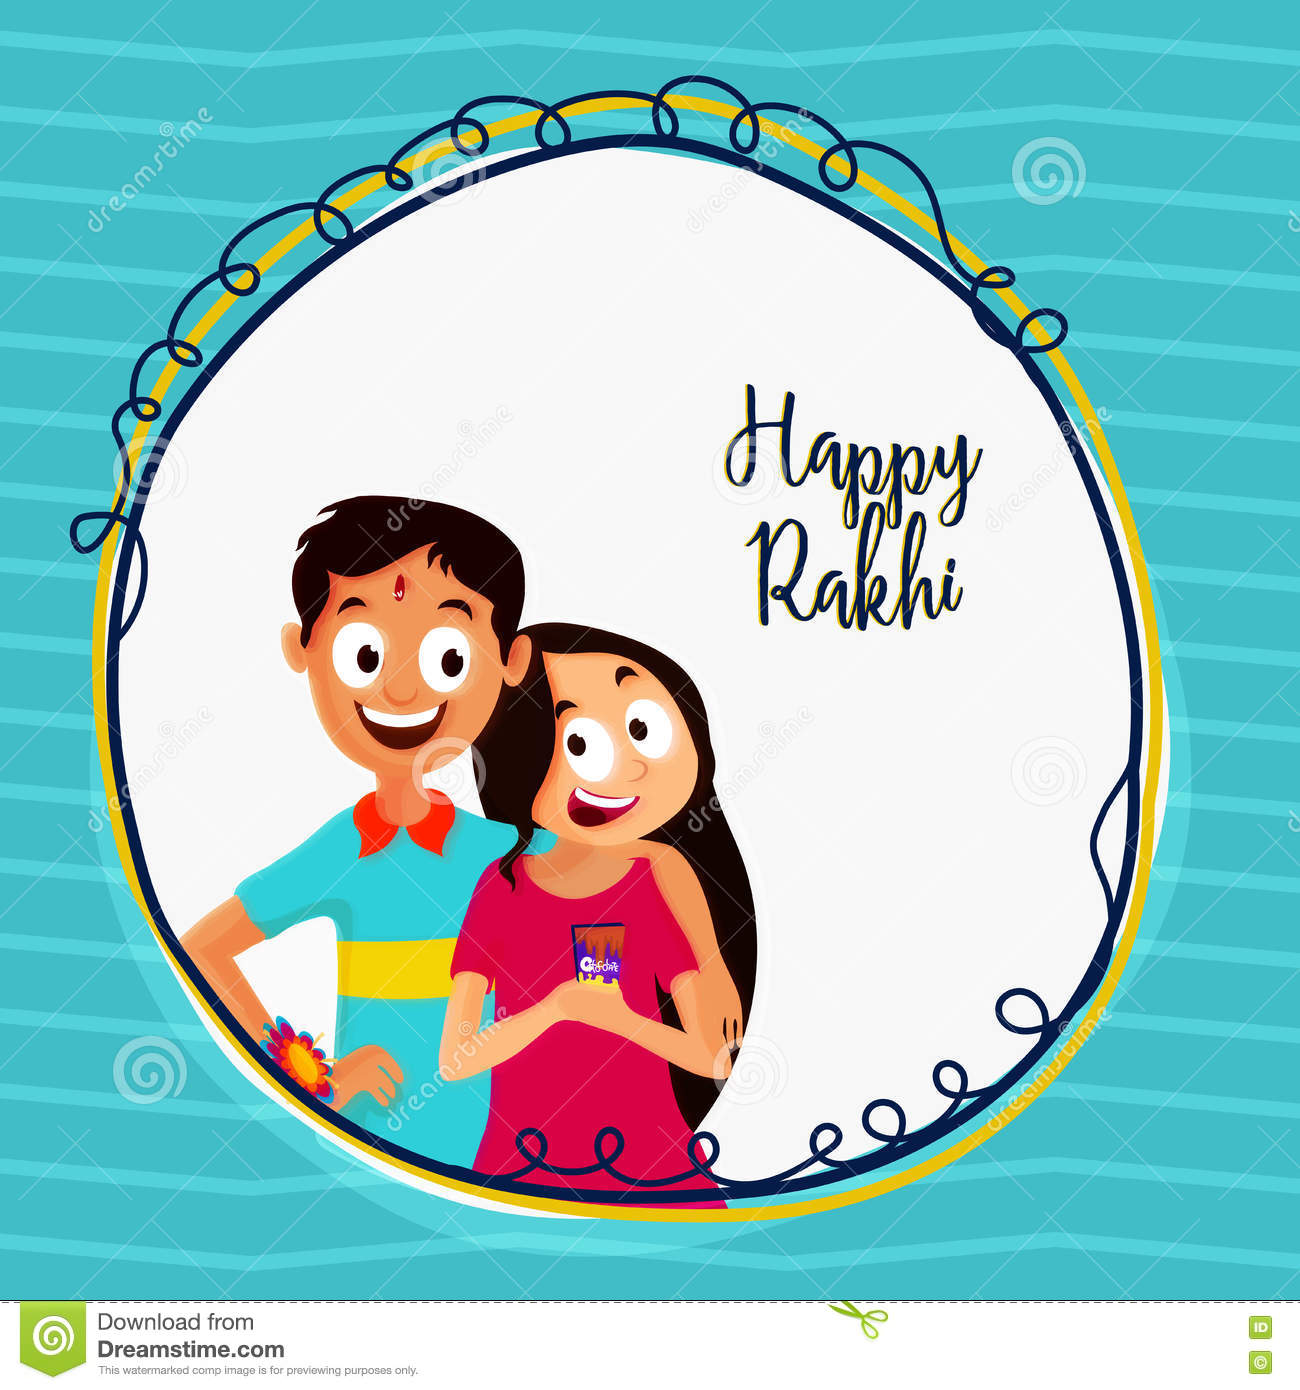 Greeting card for happy rakhi celebration stock illustration download greeting card for happy rakhi celebration stock illustration illustration of hinduism bond m4hsunfo